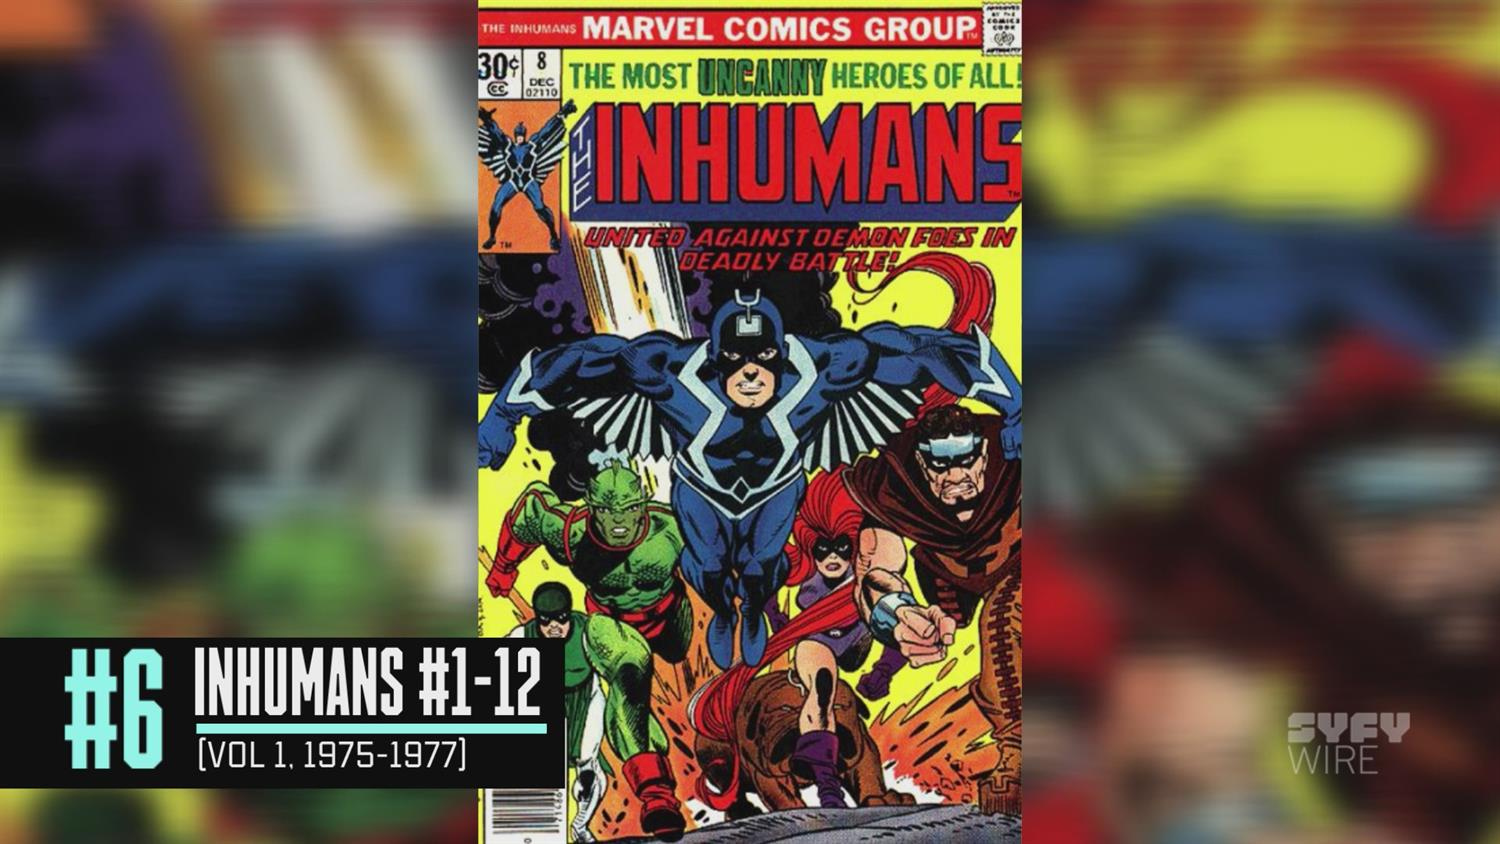 The 7 Essential Inhumans Stories